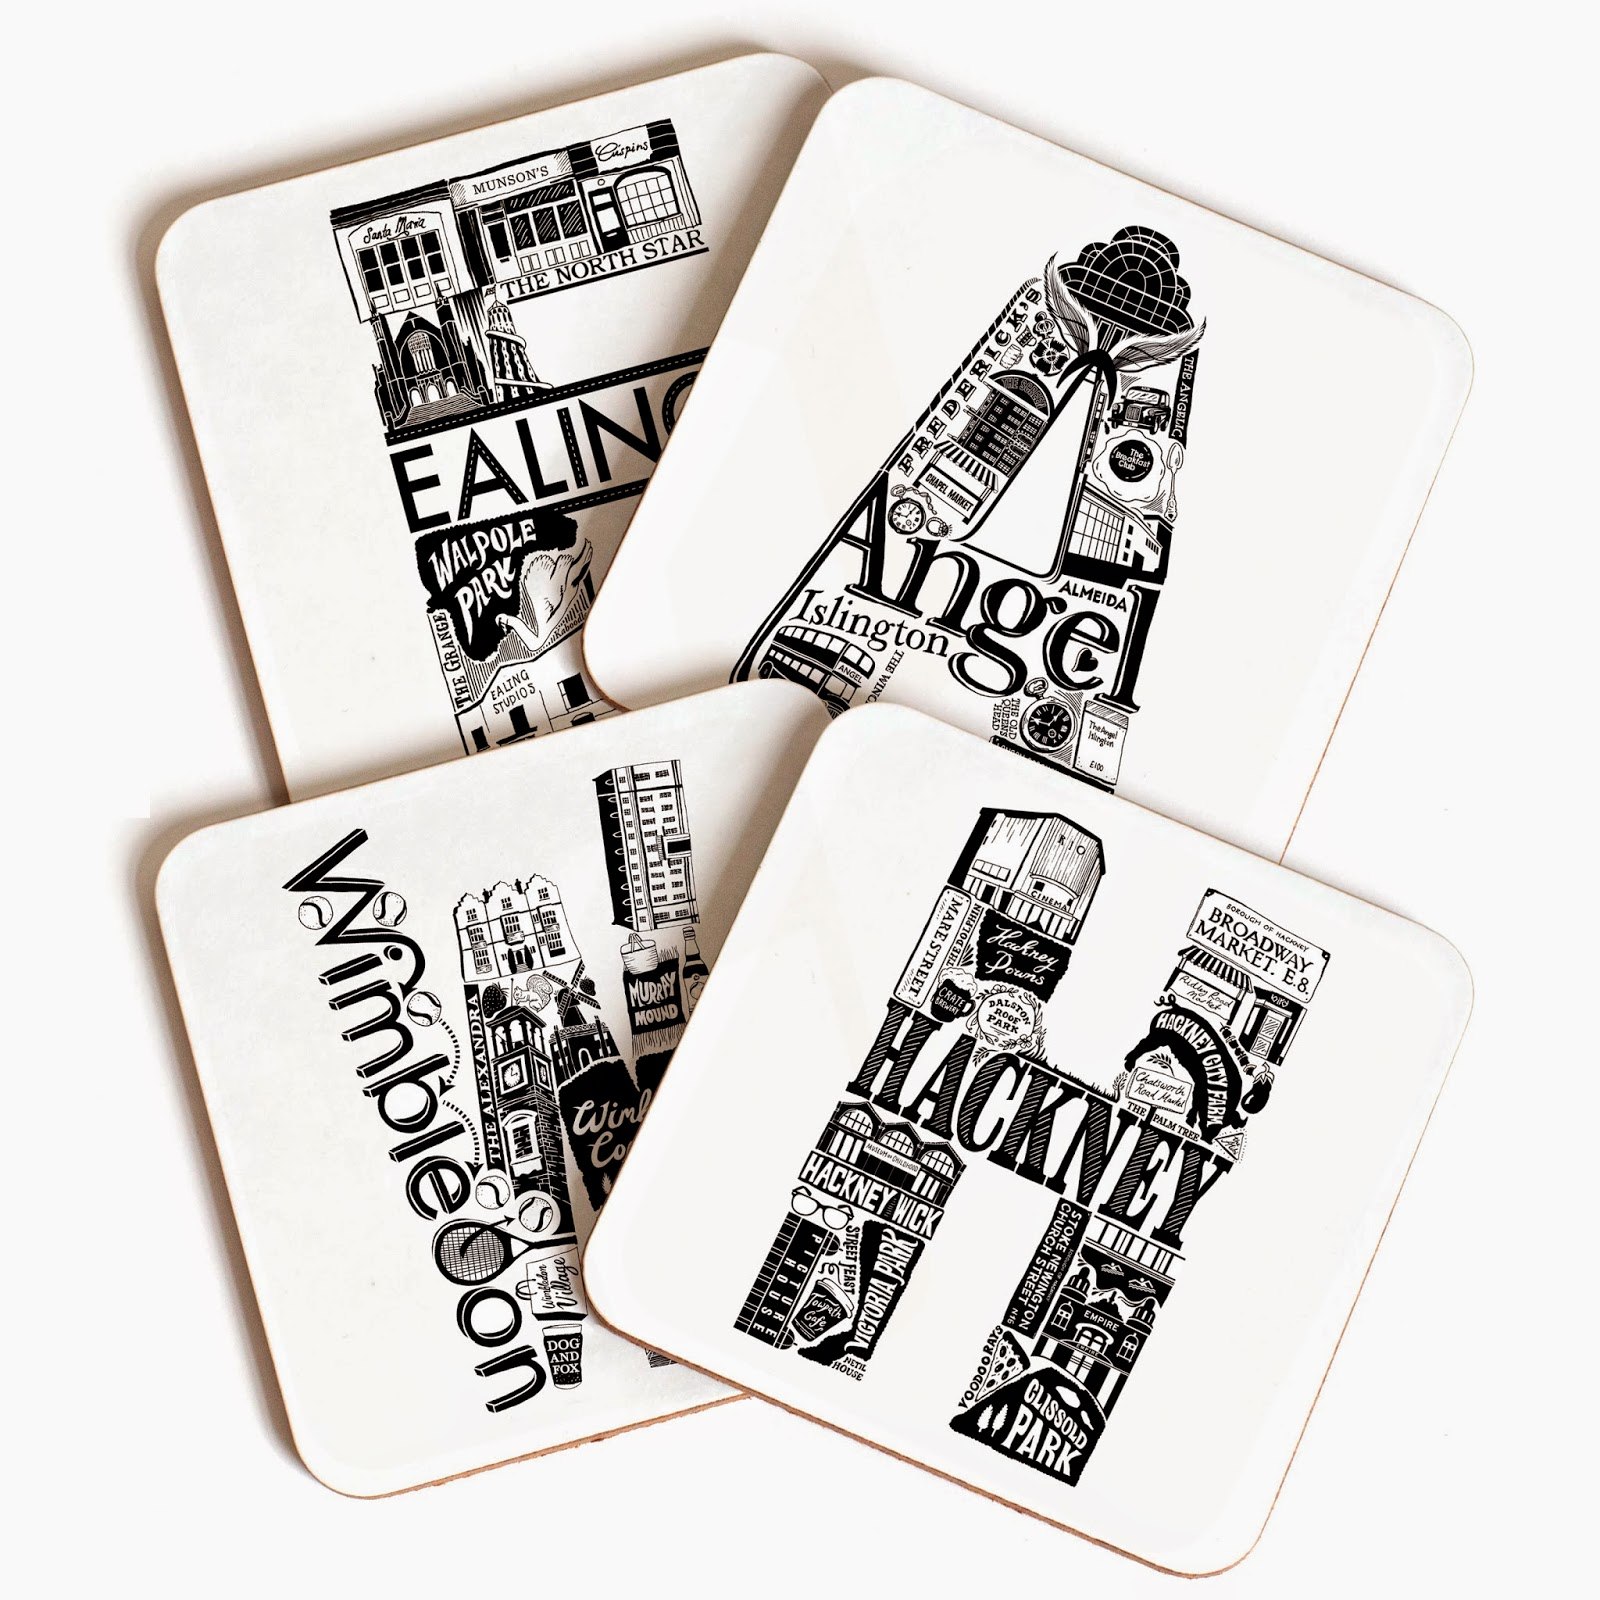 http://www.lucylovesthis.com/ourshop/prod_3447090-London-Letter-Area-Coaster.html